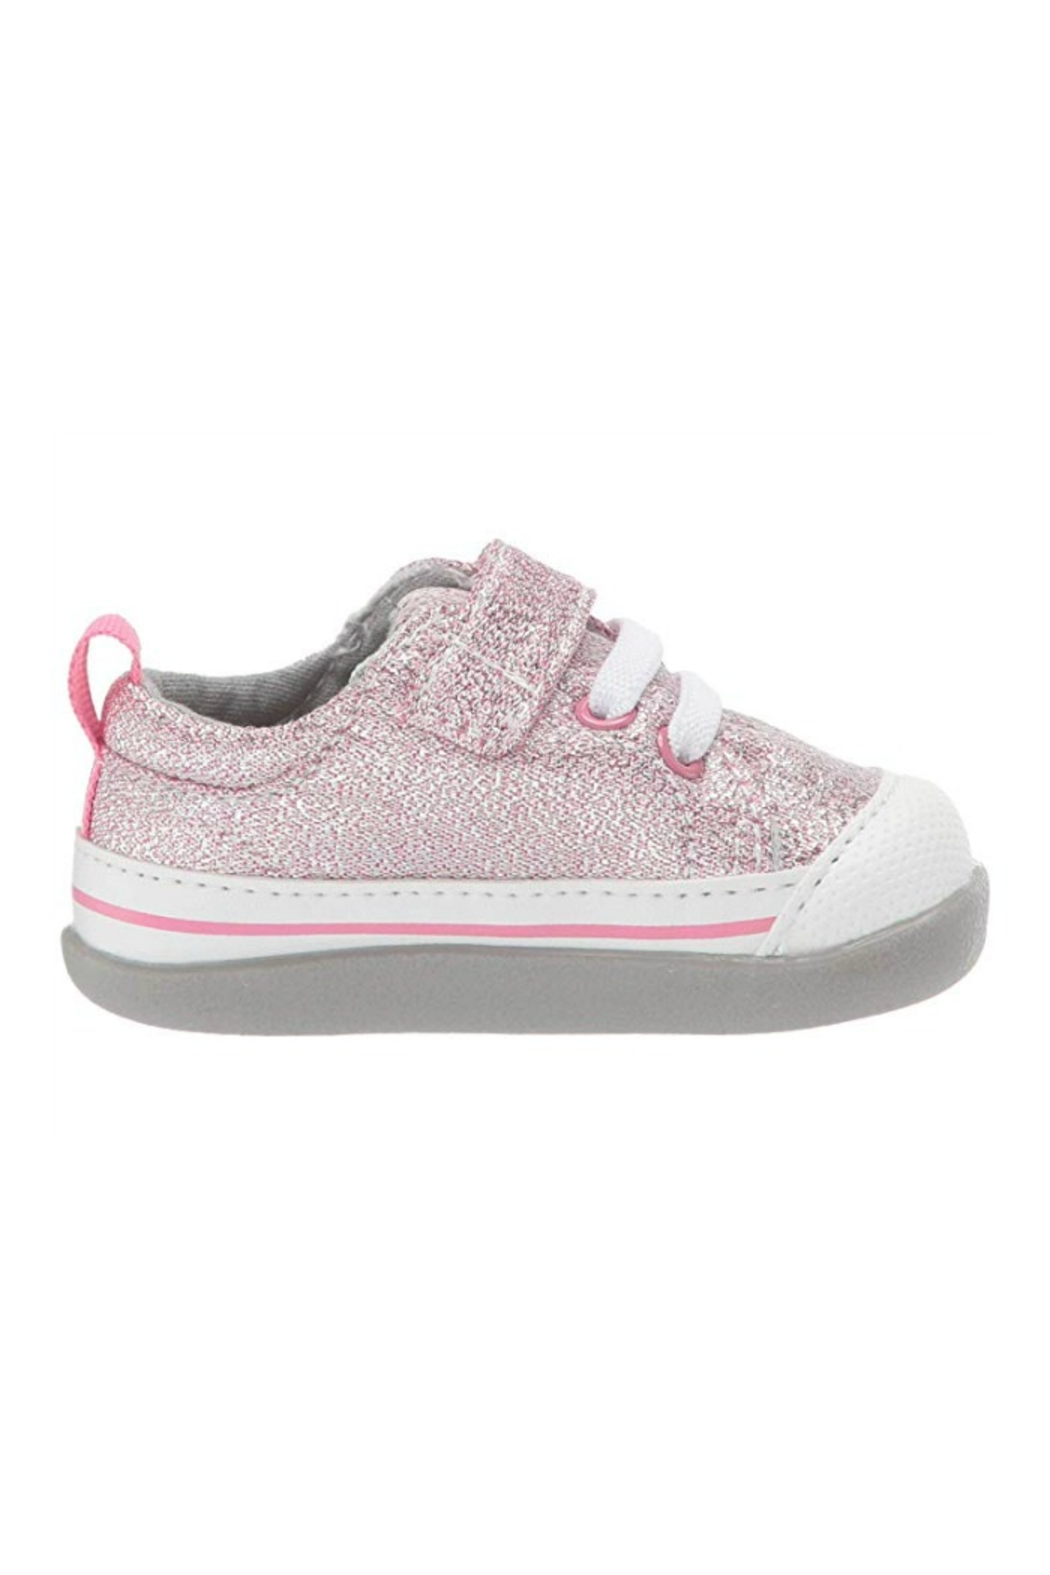 See Kai Run  Stevie II Infant in Pink Glitter - Main Image